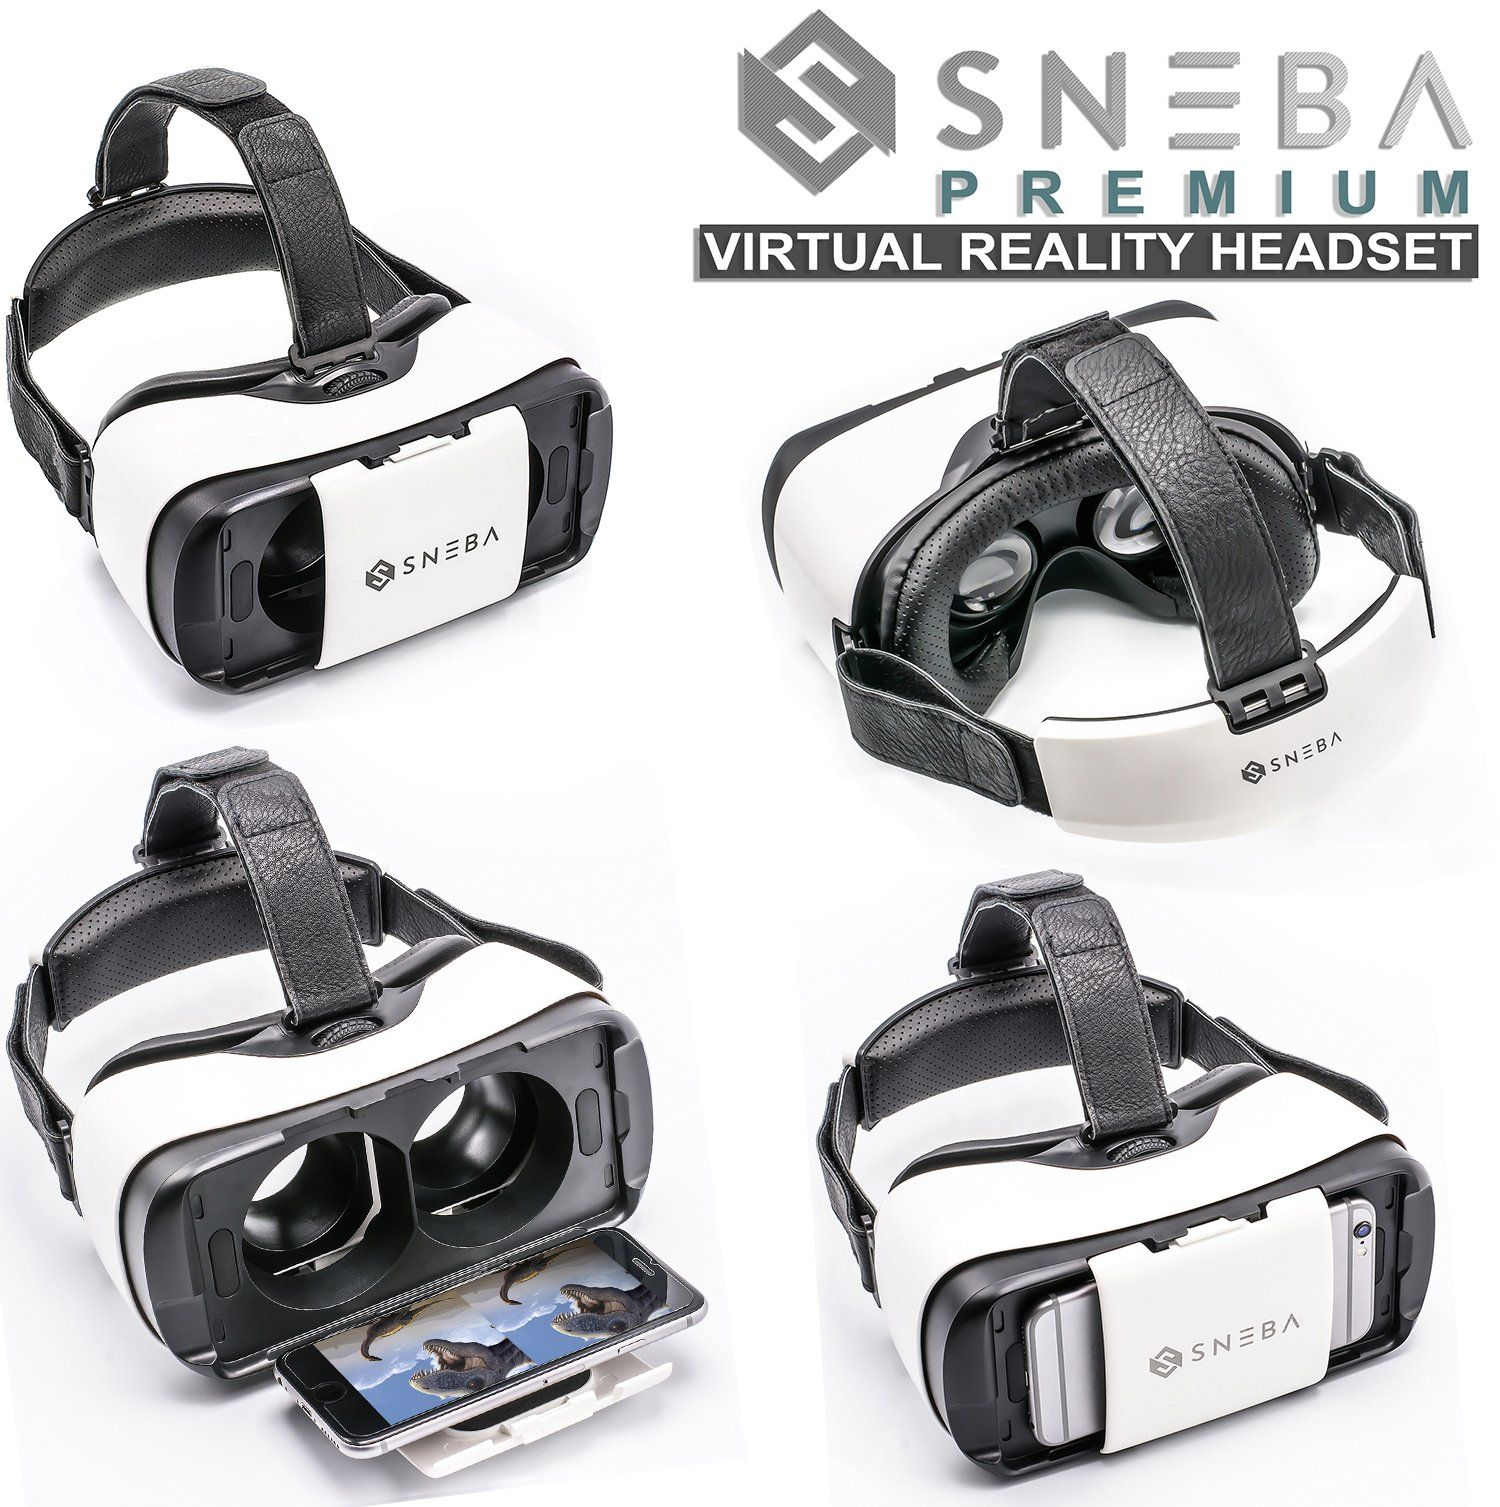 Vr Headset Sneba Black Virtual Reality Headset Vr Glasses For 3d Video Movies Games For Apple Iphone Virtual Reality Glasses Virtual Reality Headset Vr Headset